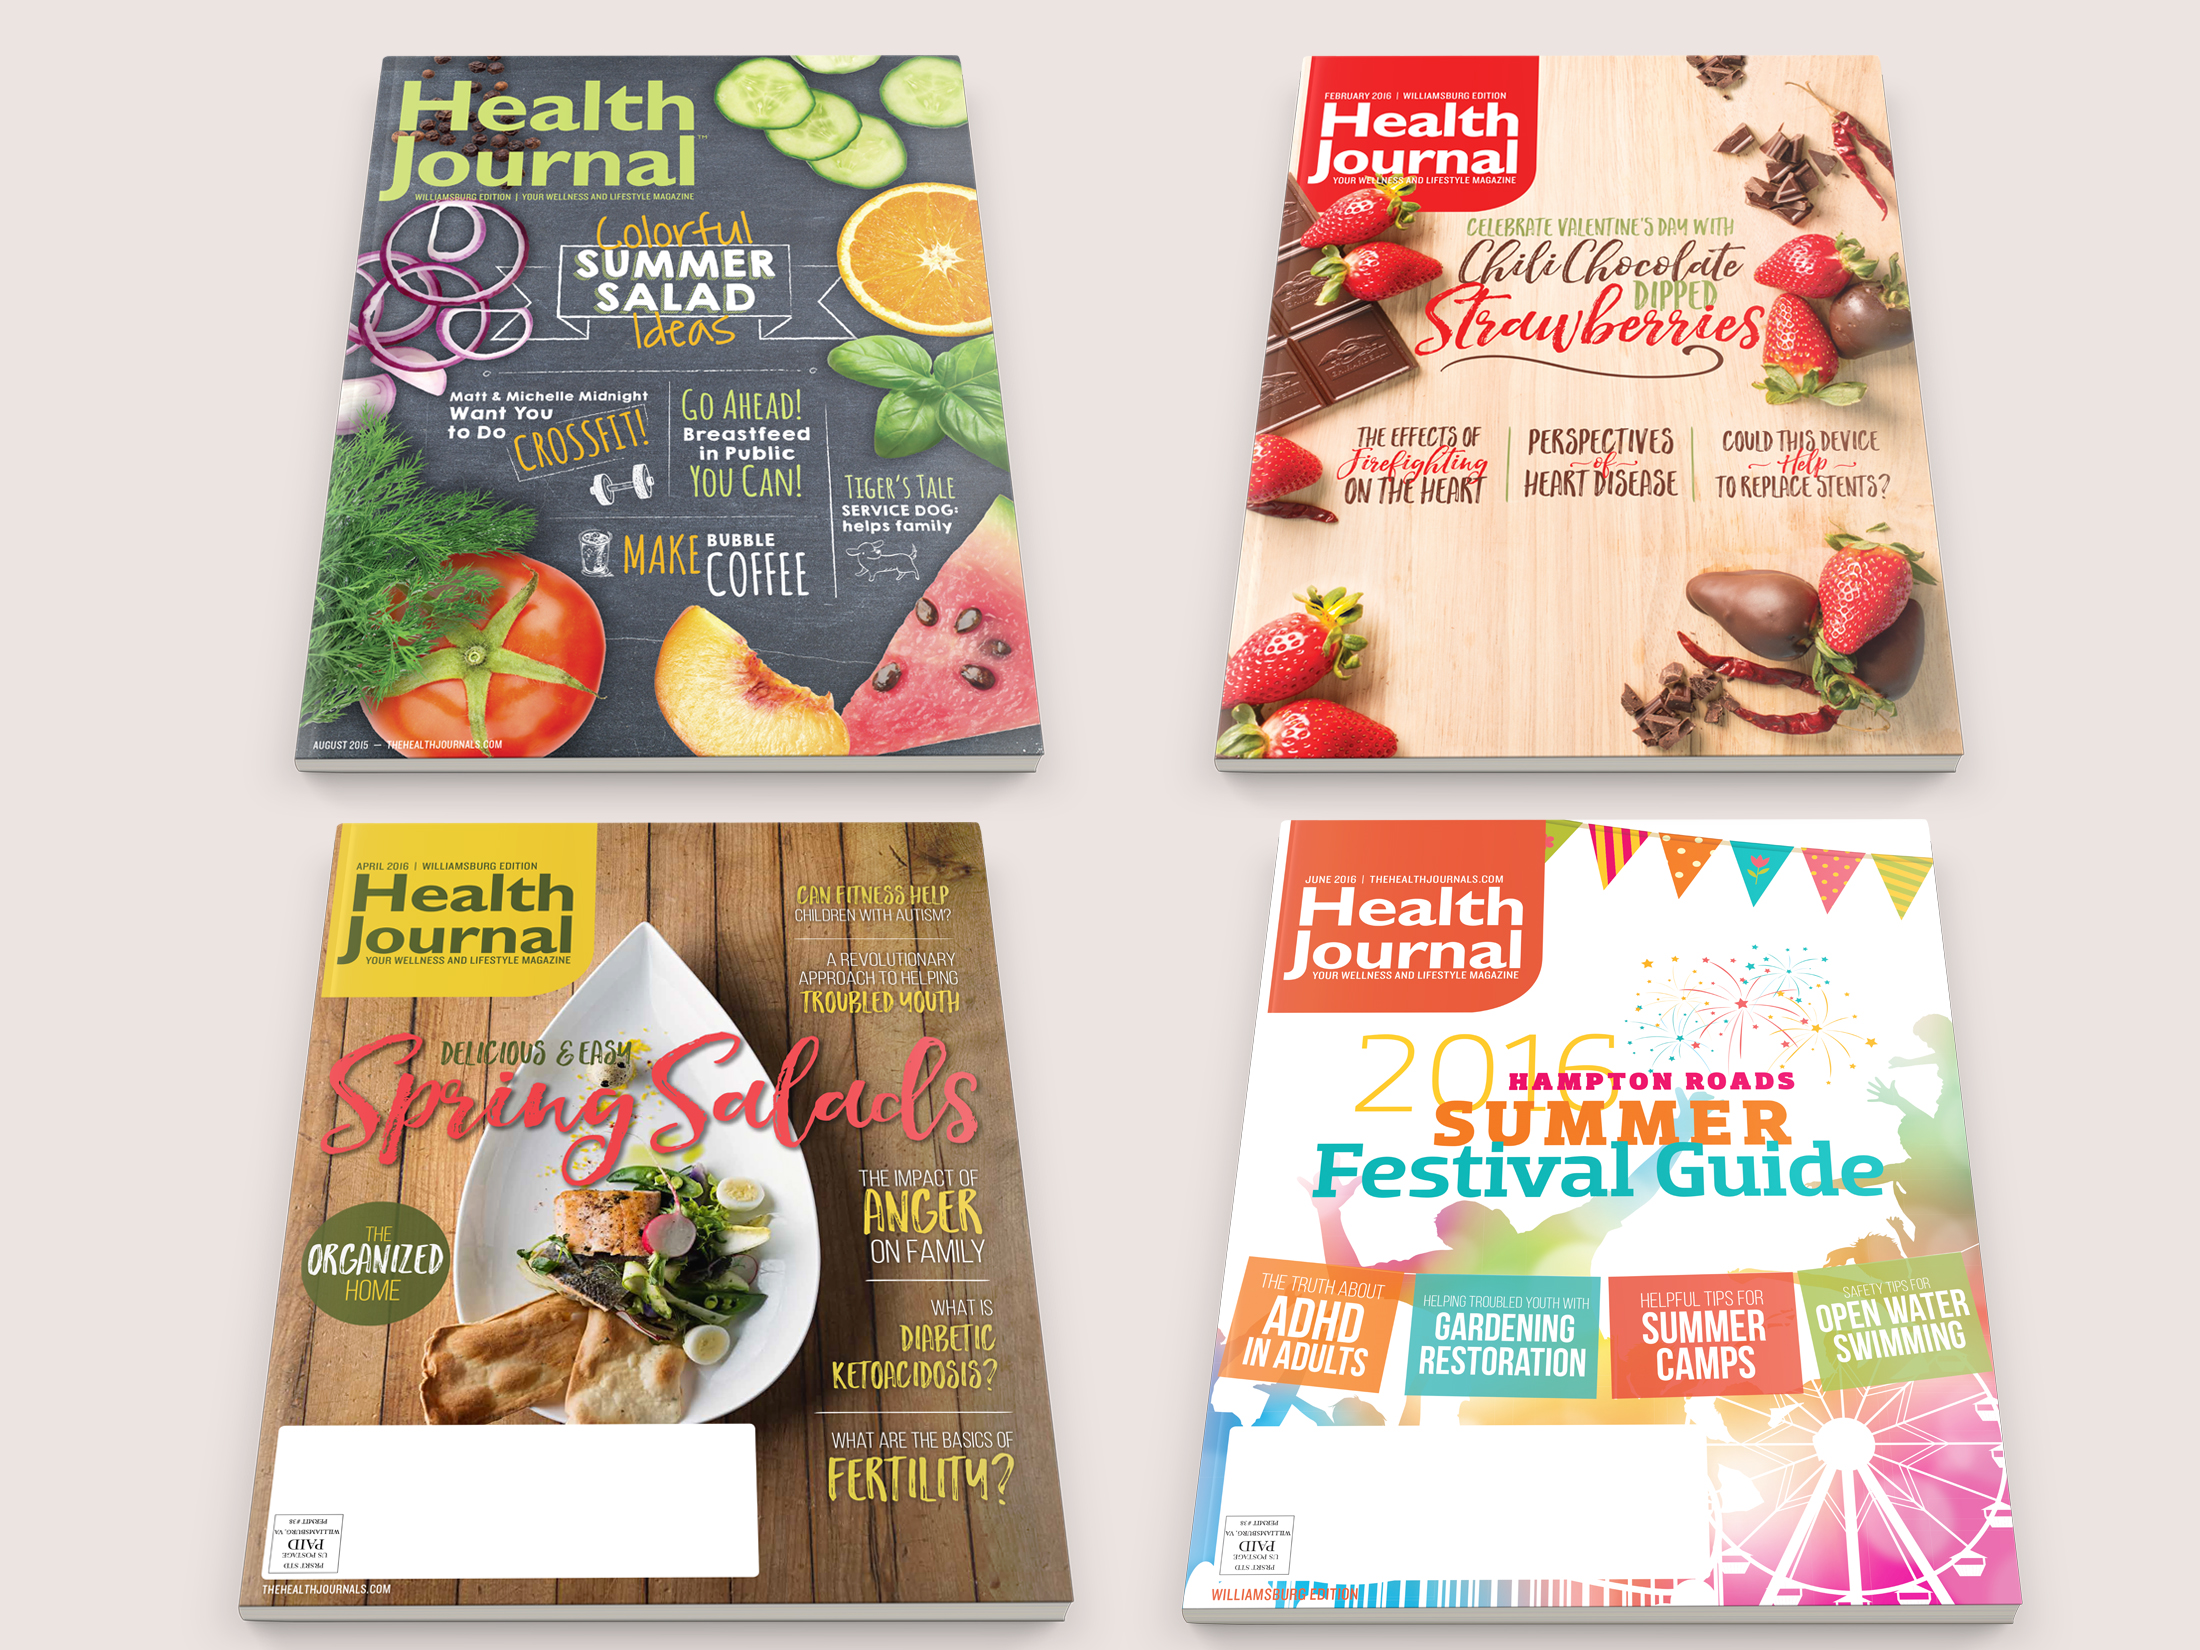 The Health Journal Cover Designs